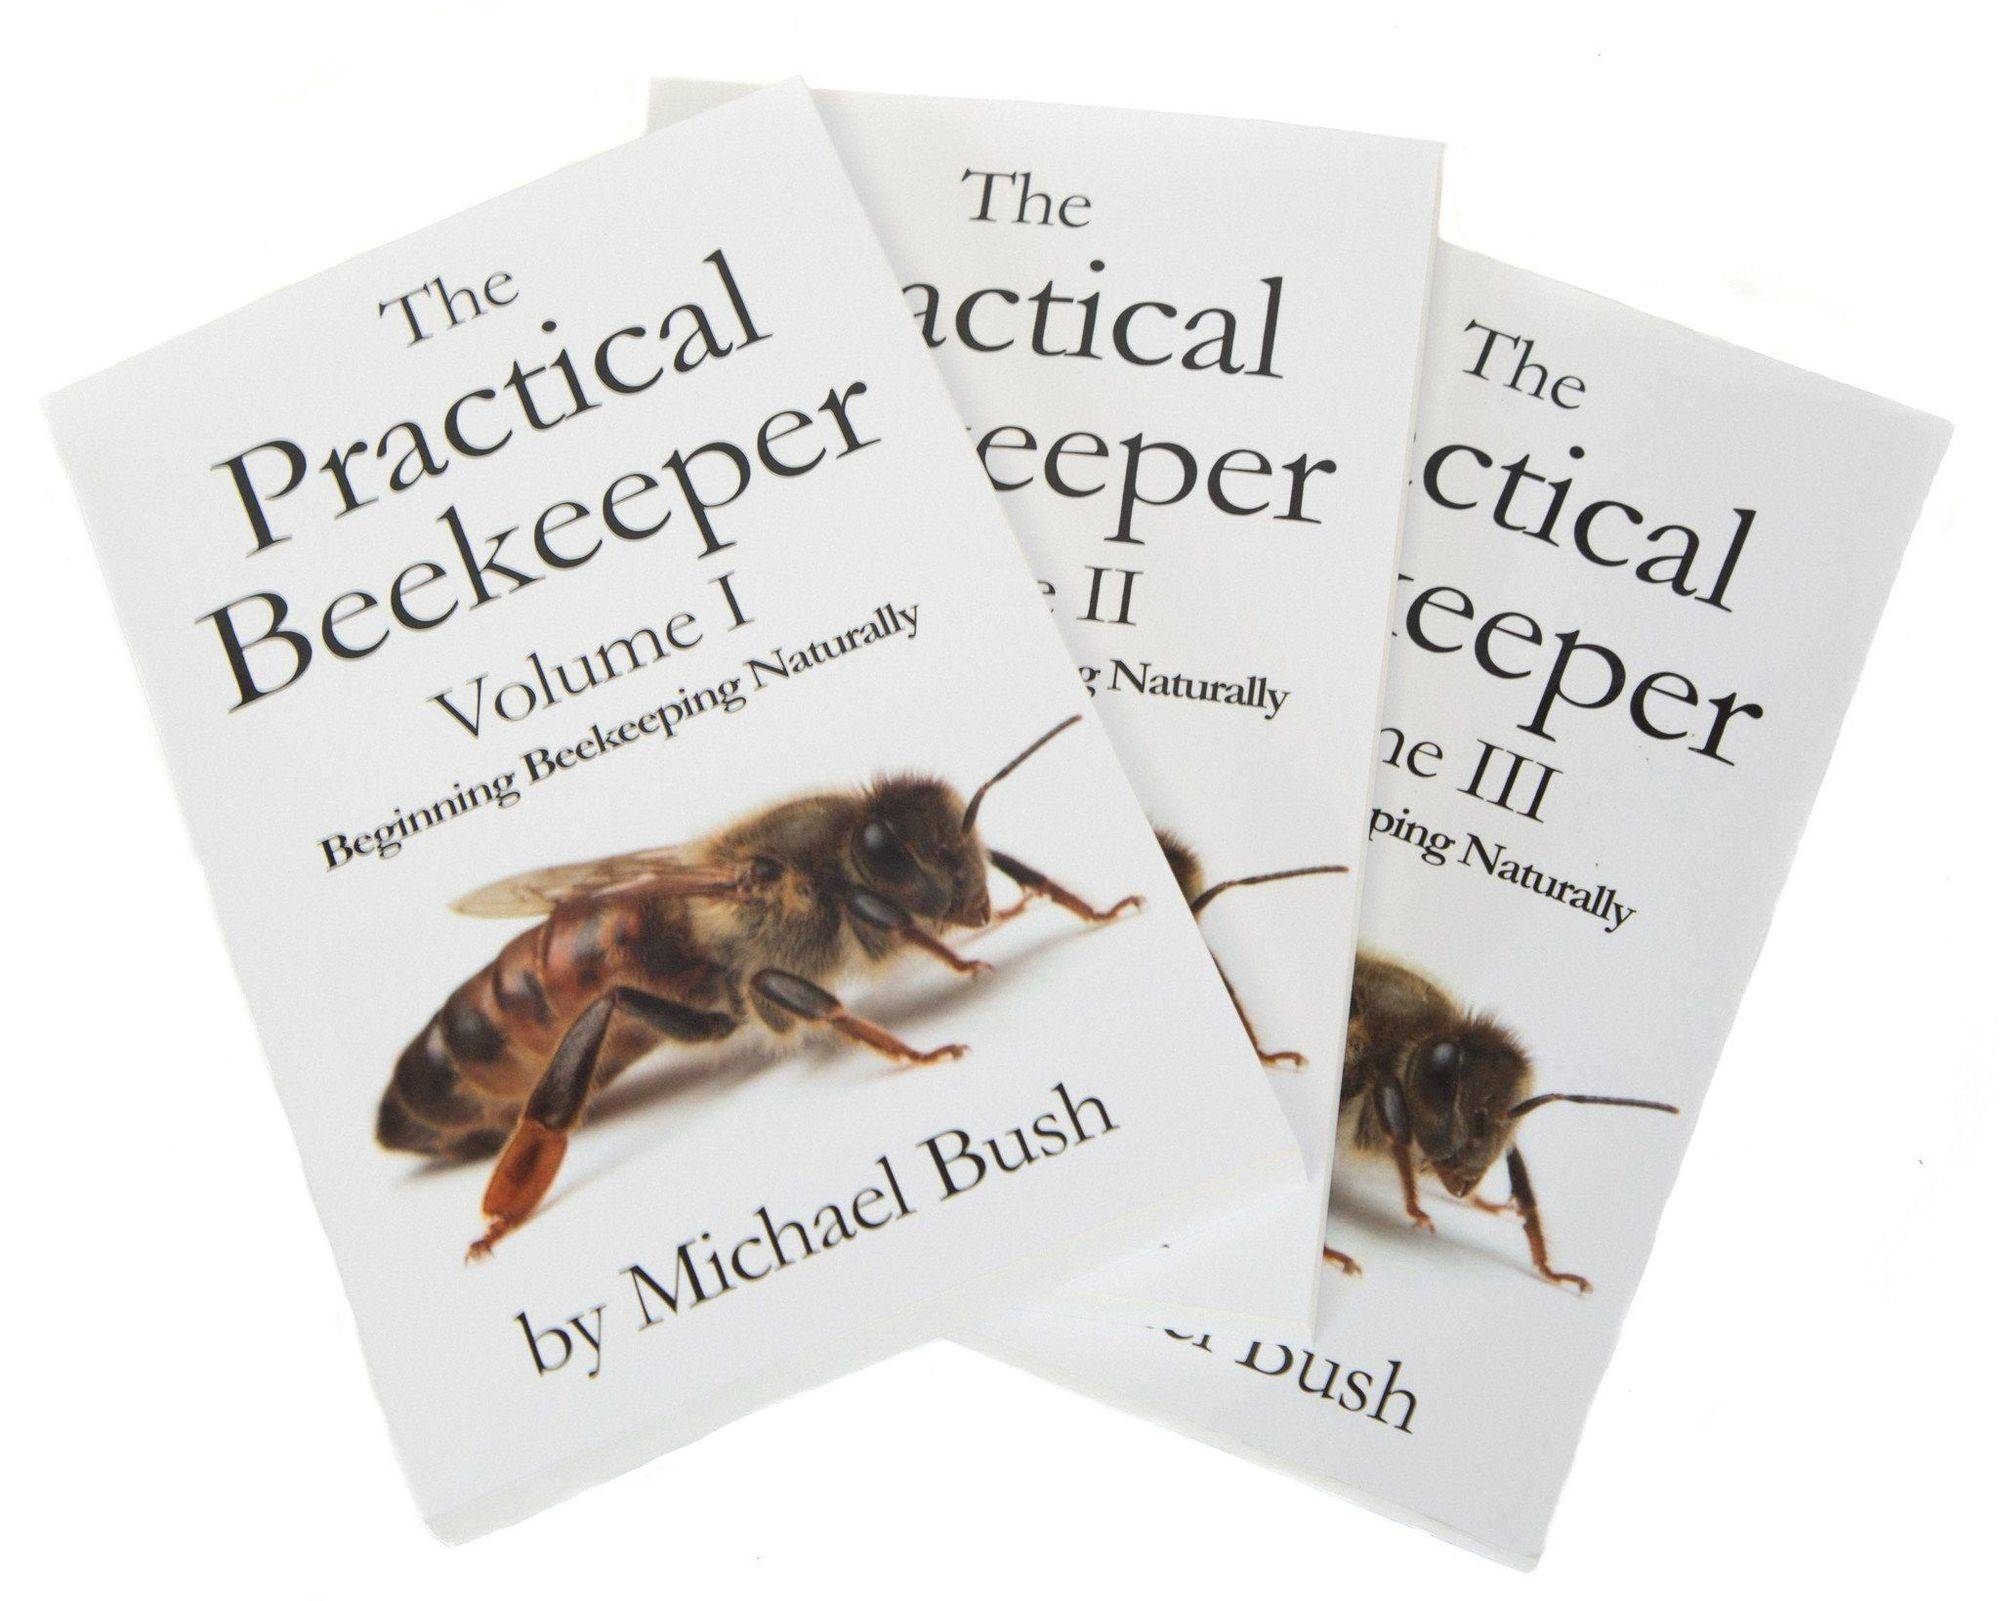 Beekeeper book bundle